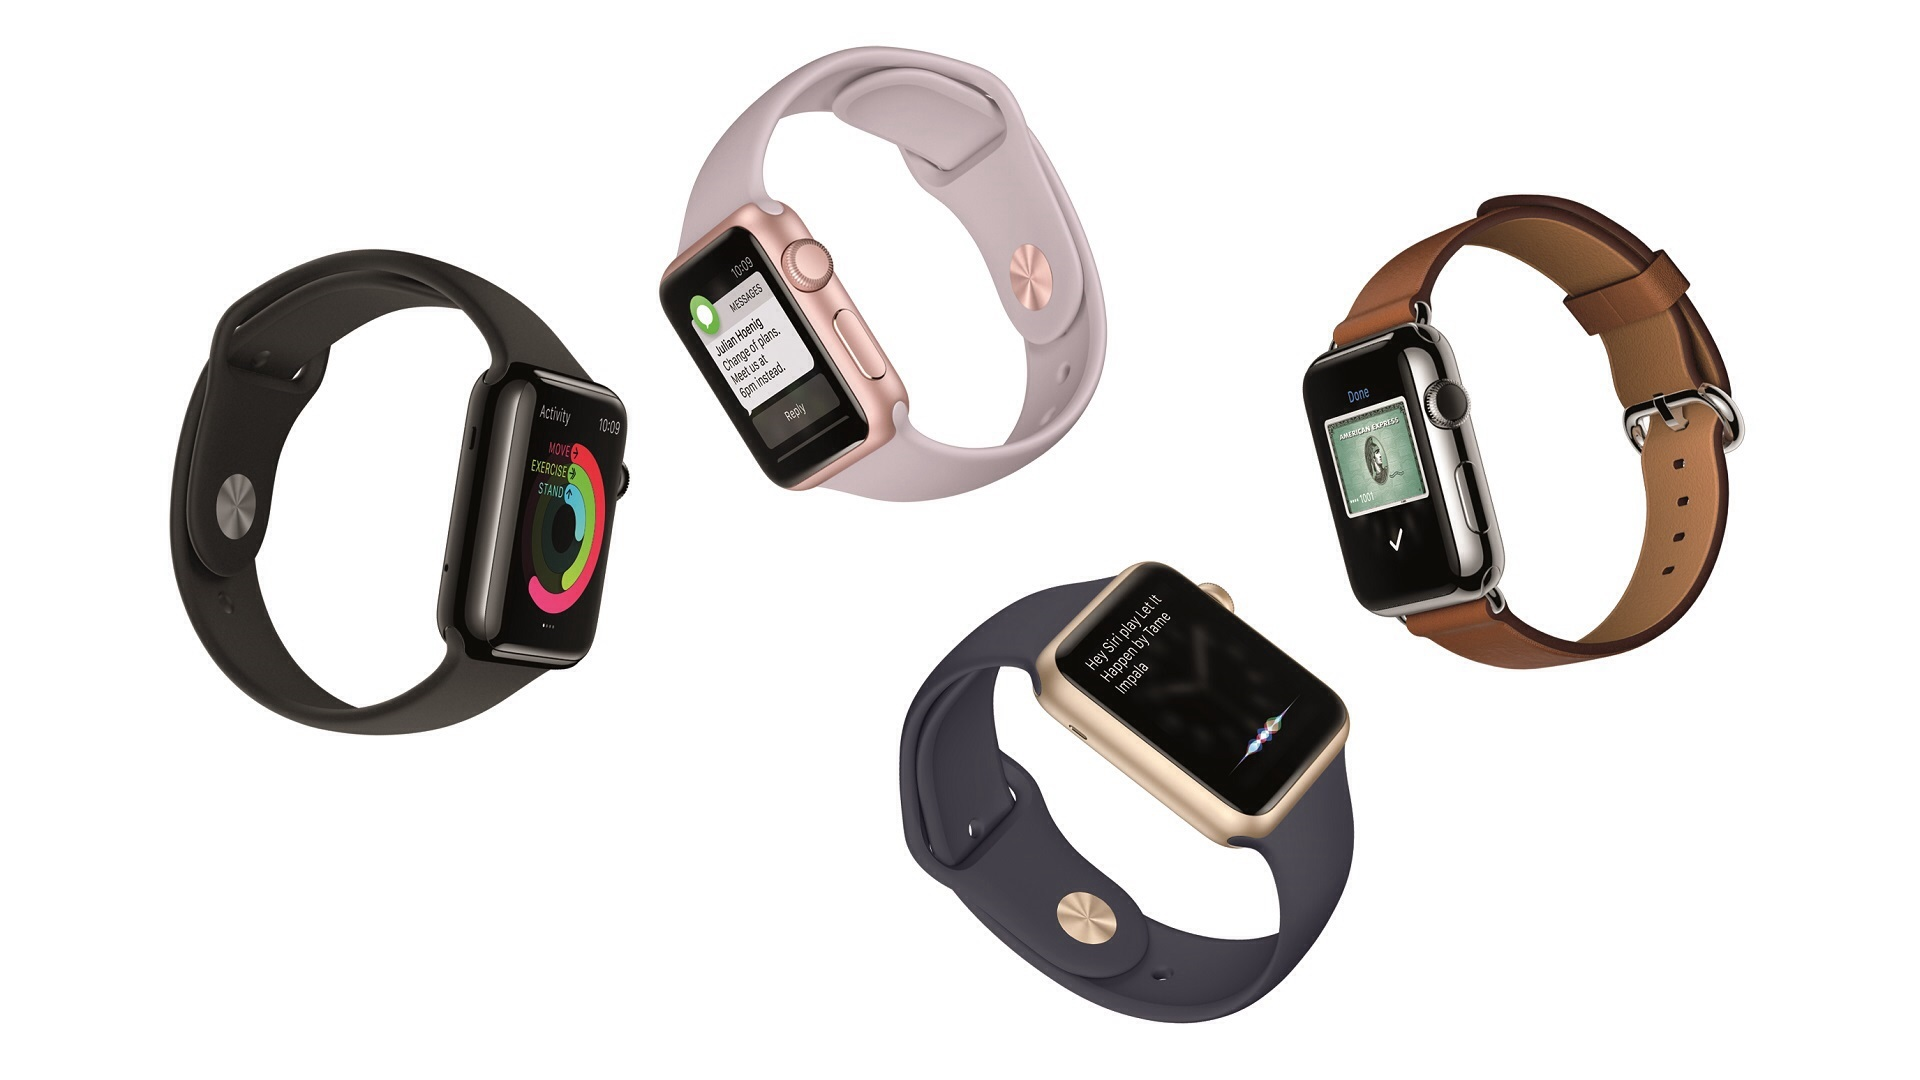 Photo of Apple Watch Sells at Top End of Price Estimates, Says Report